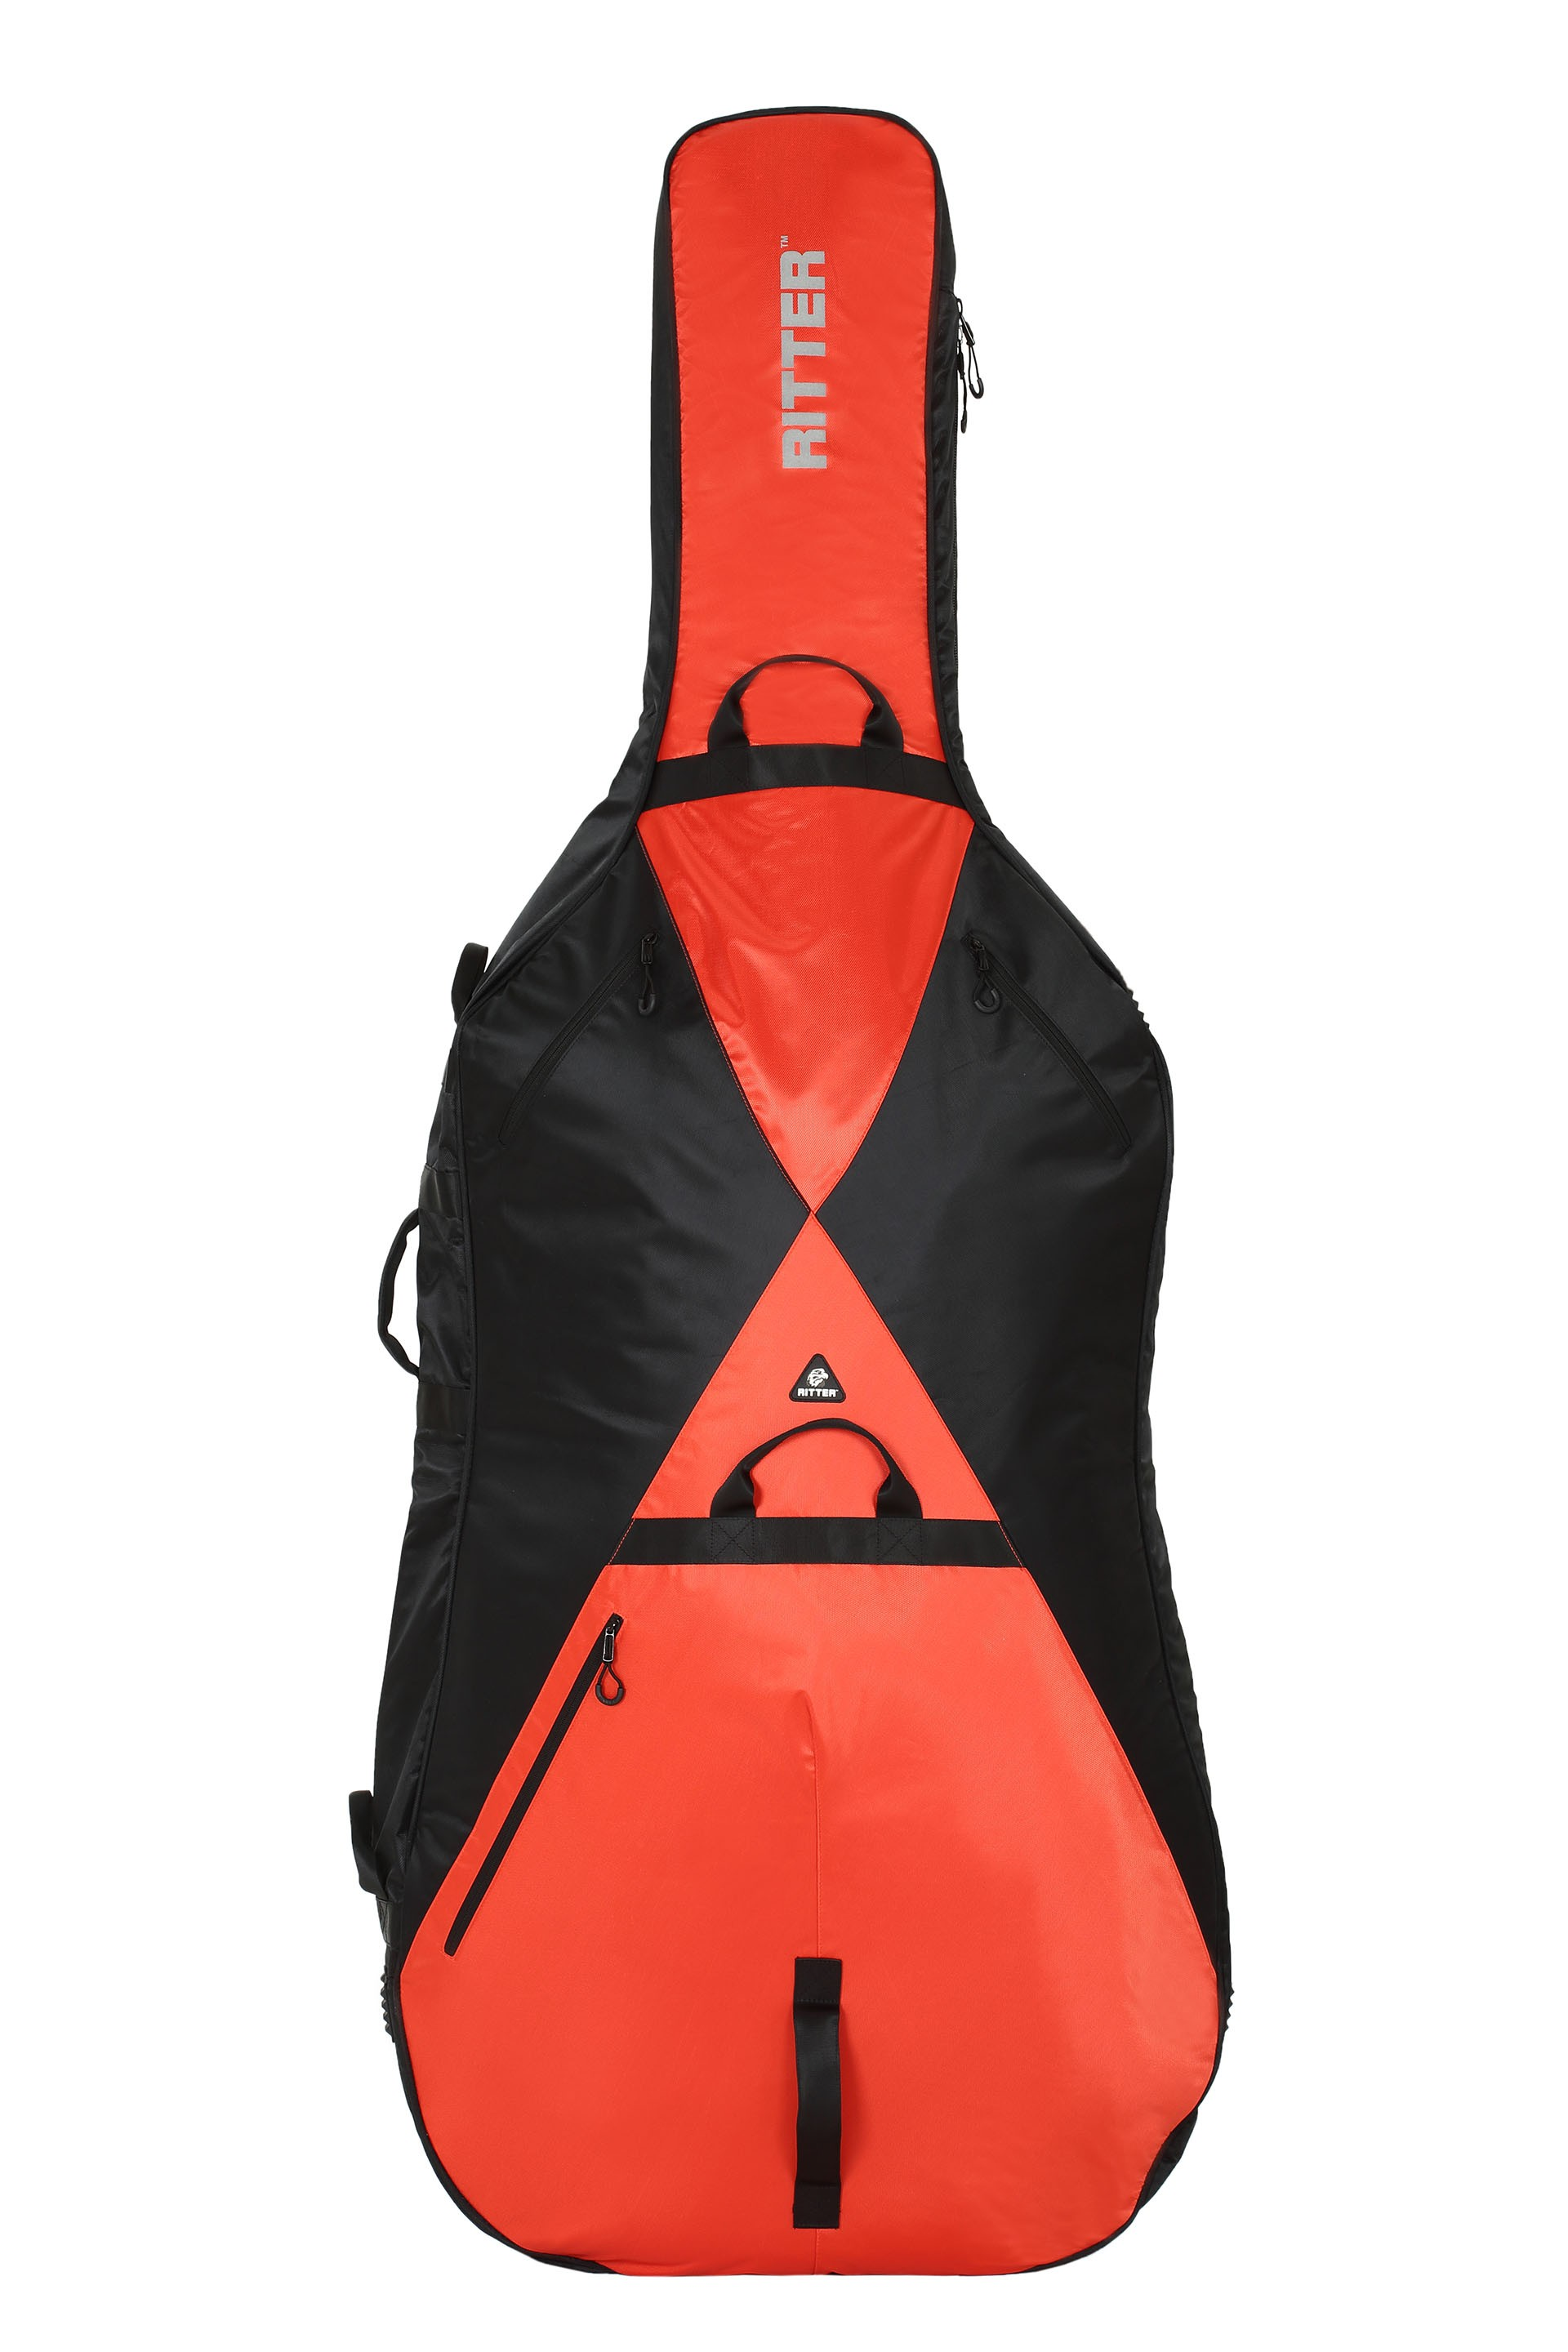 Ritter RSP5 Double Bass Bag